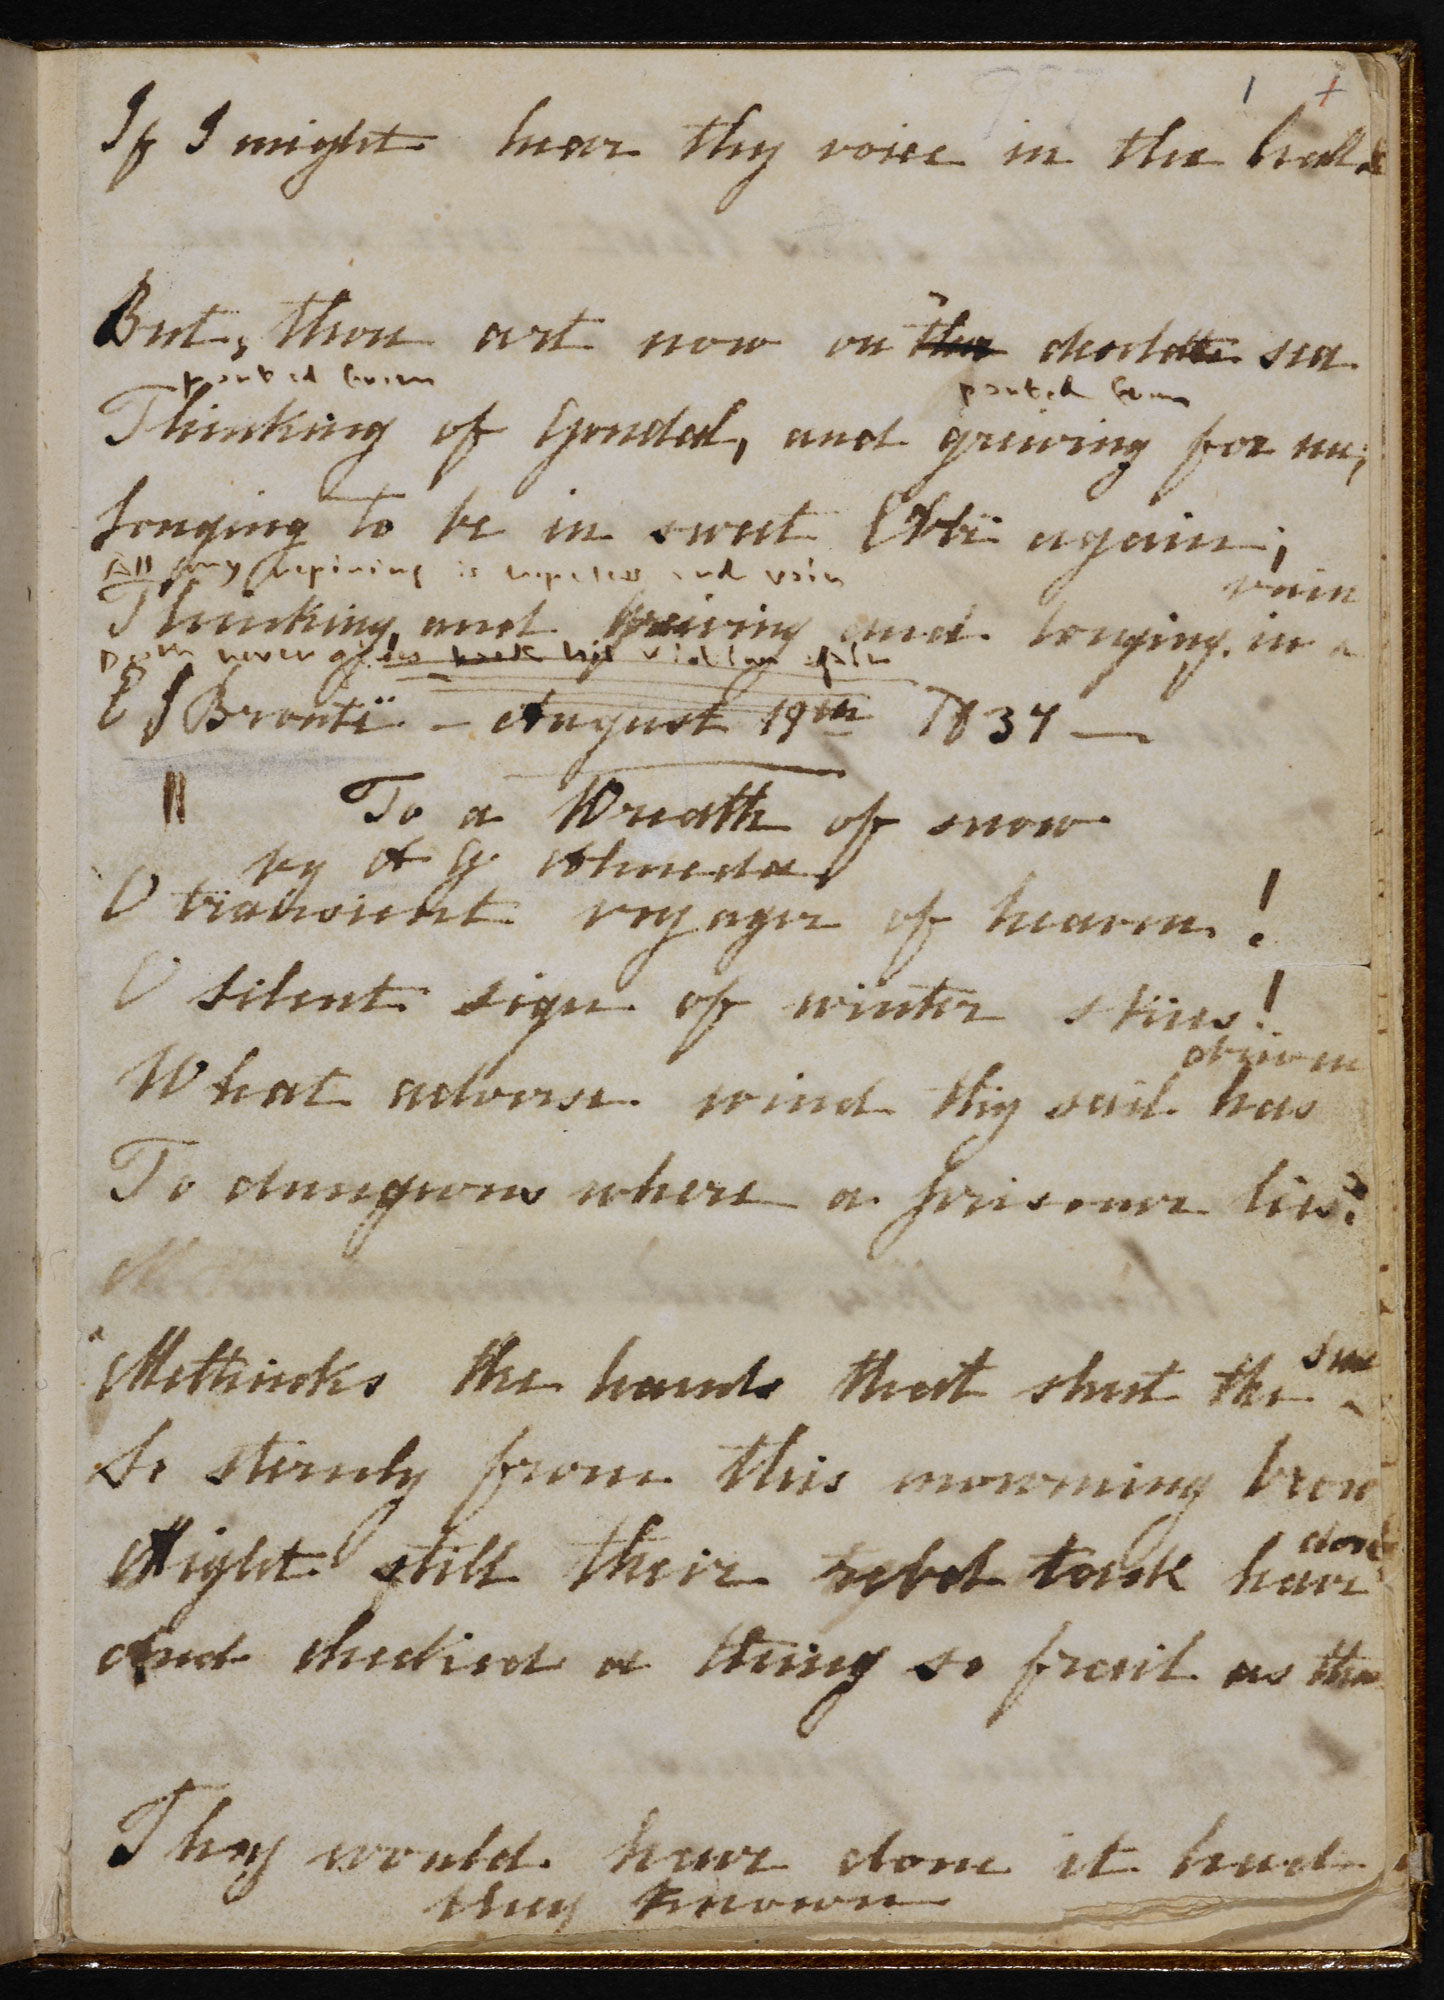 Emily Brontë's poetry notebook [folio: 1r]